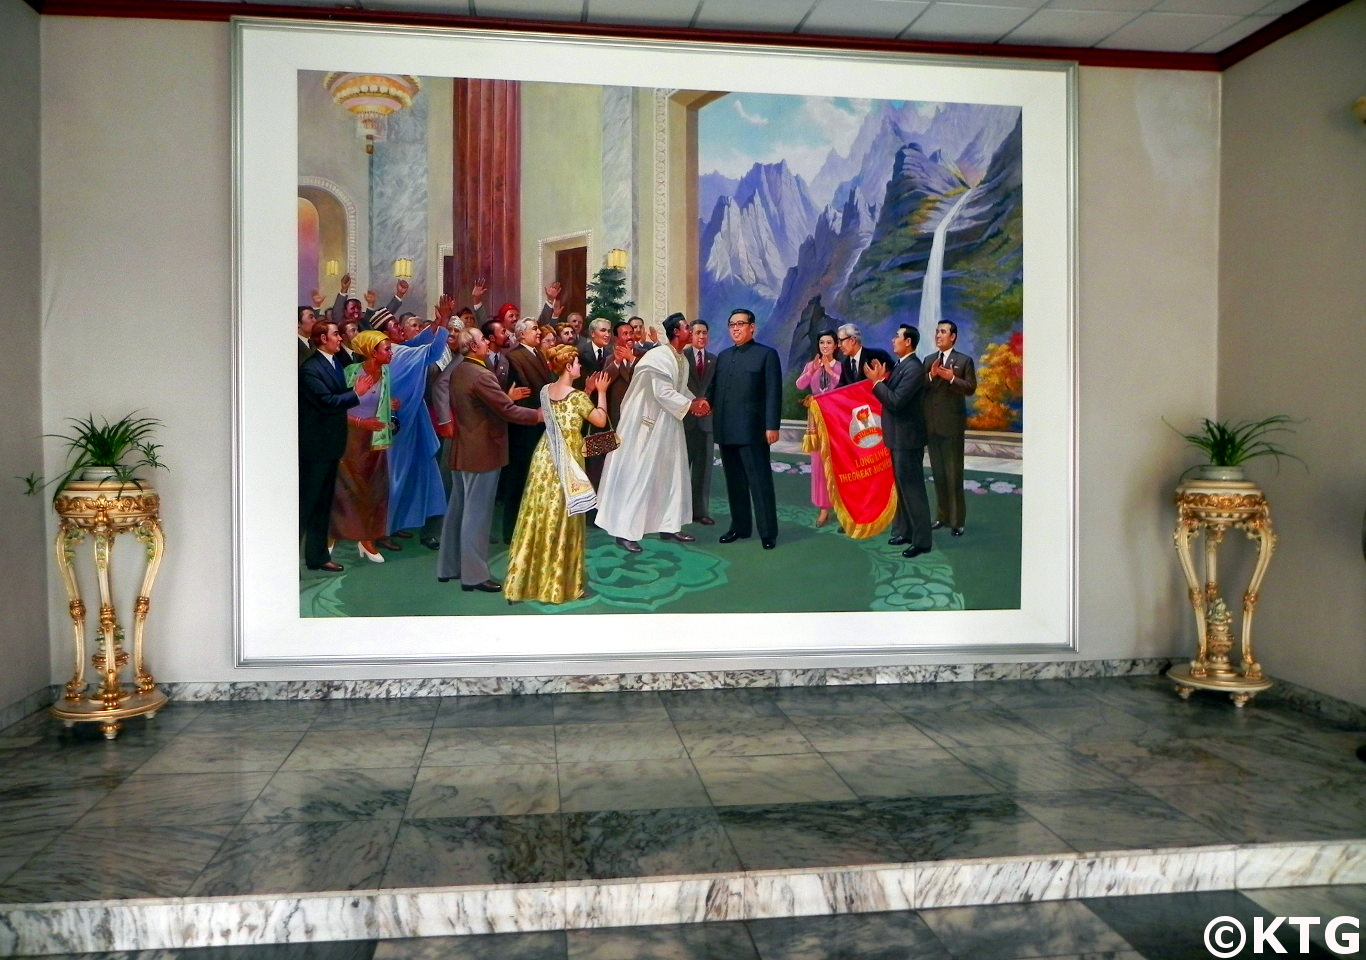 painting at the lobby of the 3.8 Hotel in Sariwon of President Kim Il Sung greeting foreign diginitaries, North Korea (DPRK). Picture taken by KTG Tours